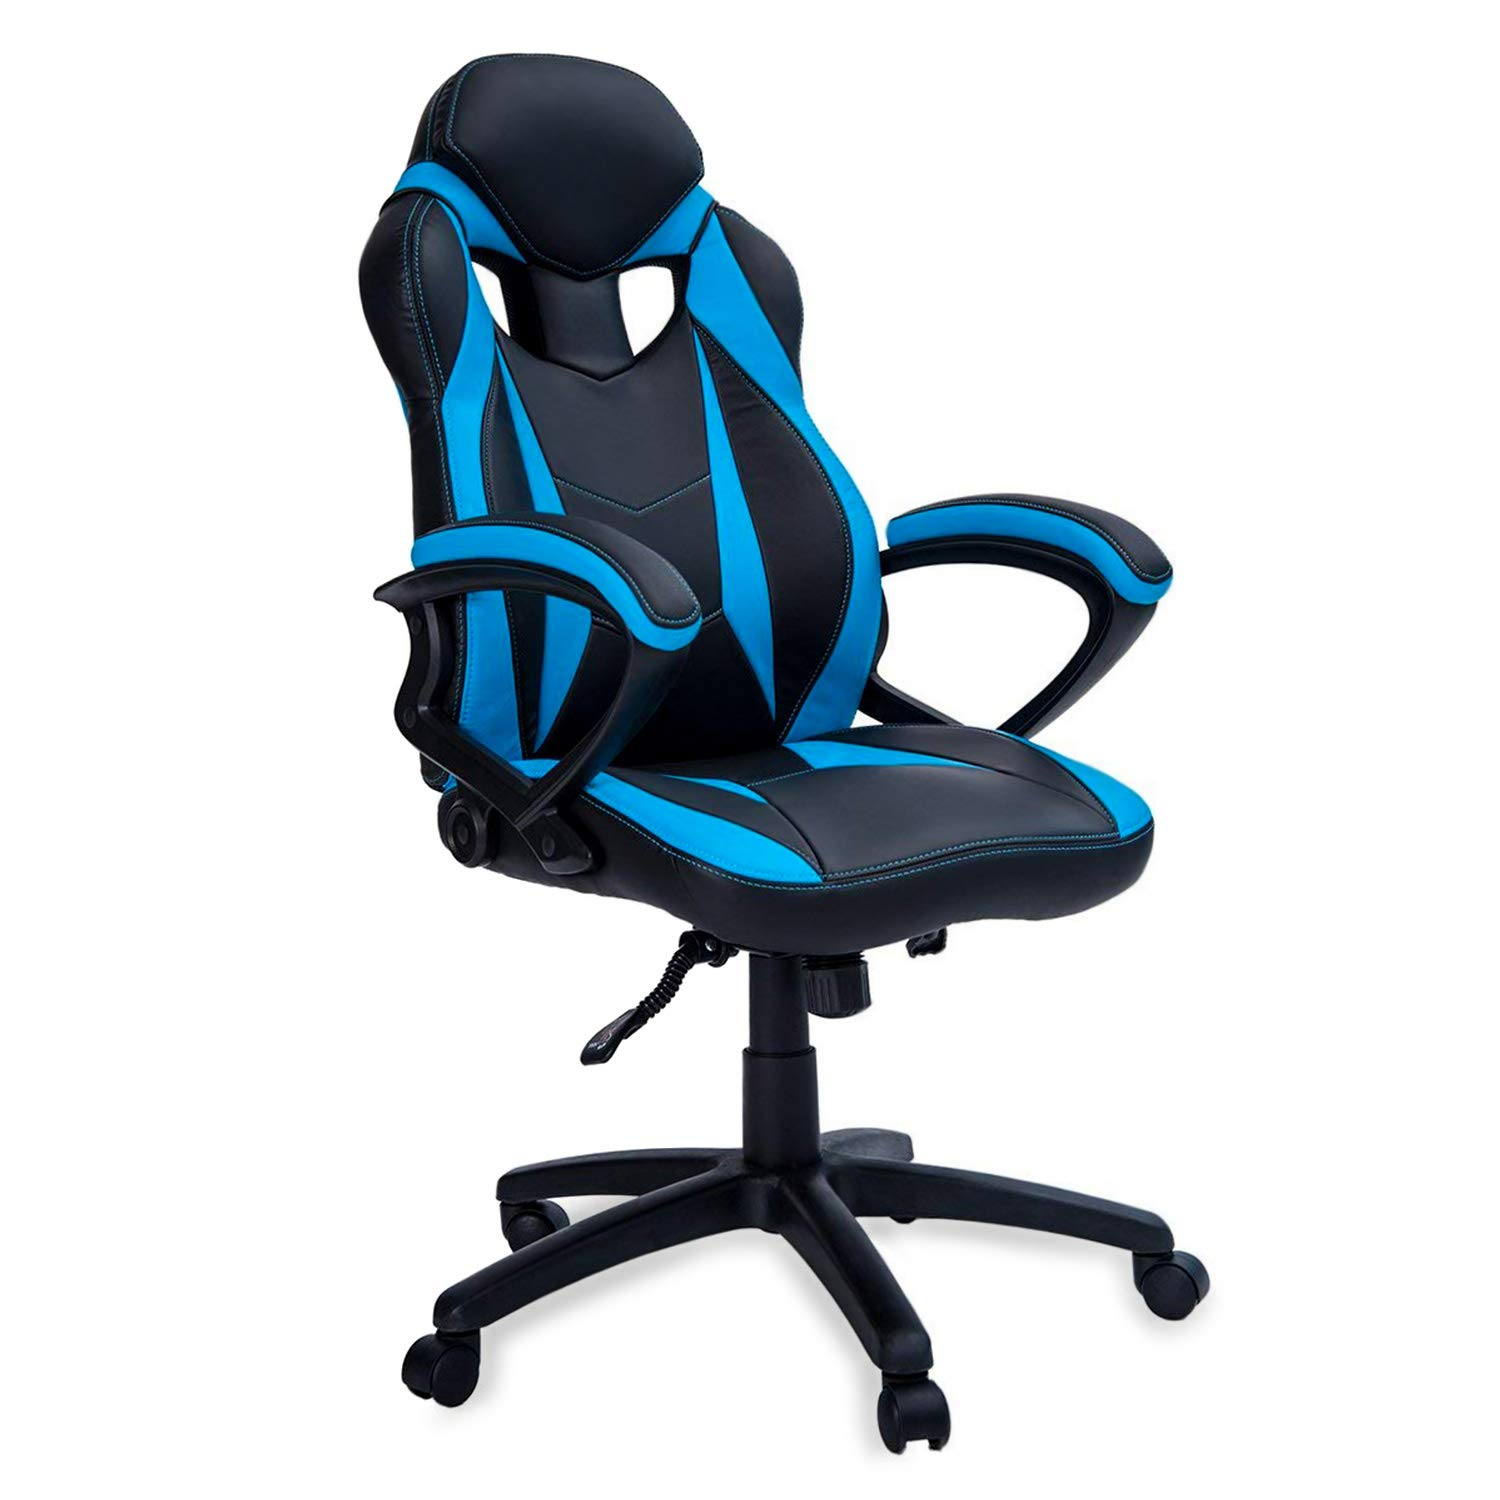 MIERES Gaming Racing Office High Back Computer Desk PU Leather Executive and Ergonomic Adjustable Swivel Chair Blue